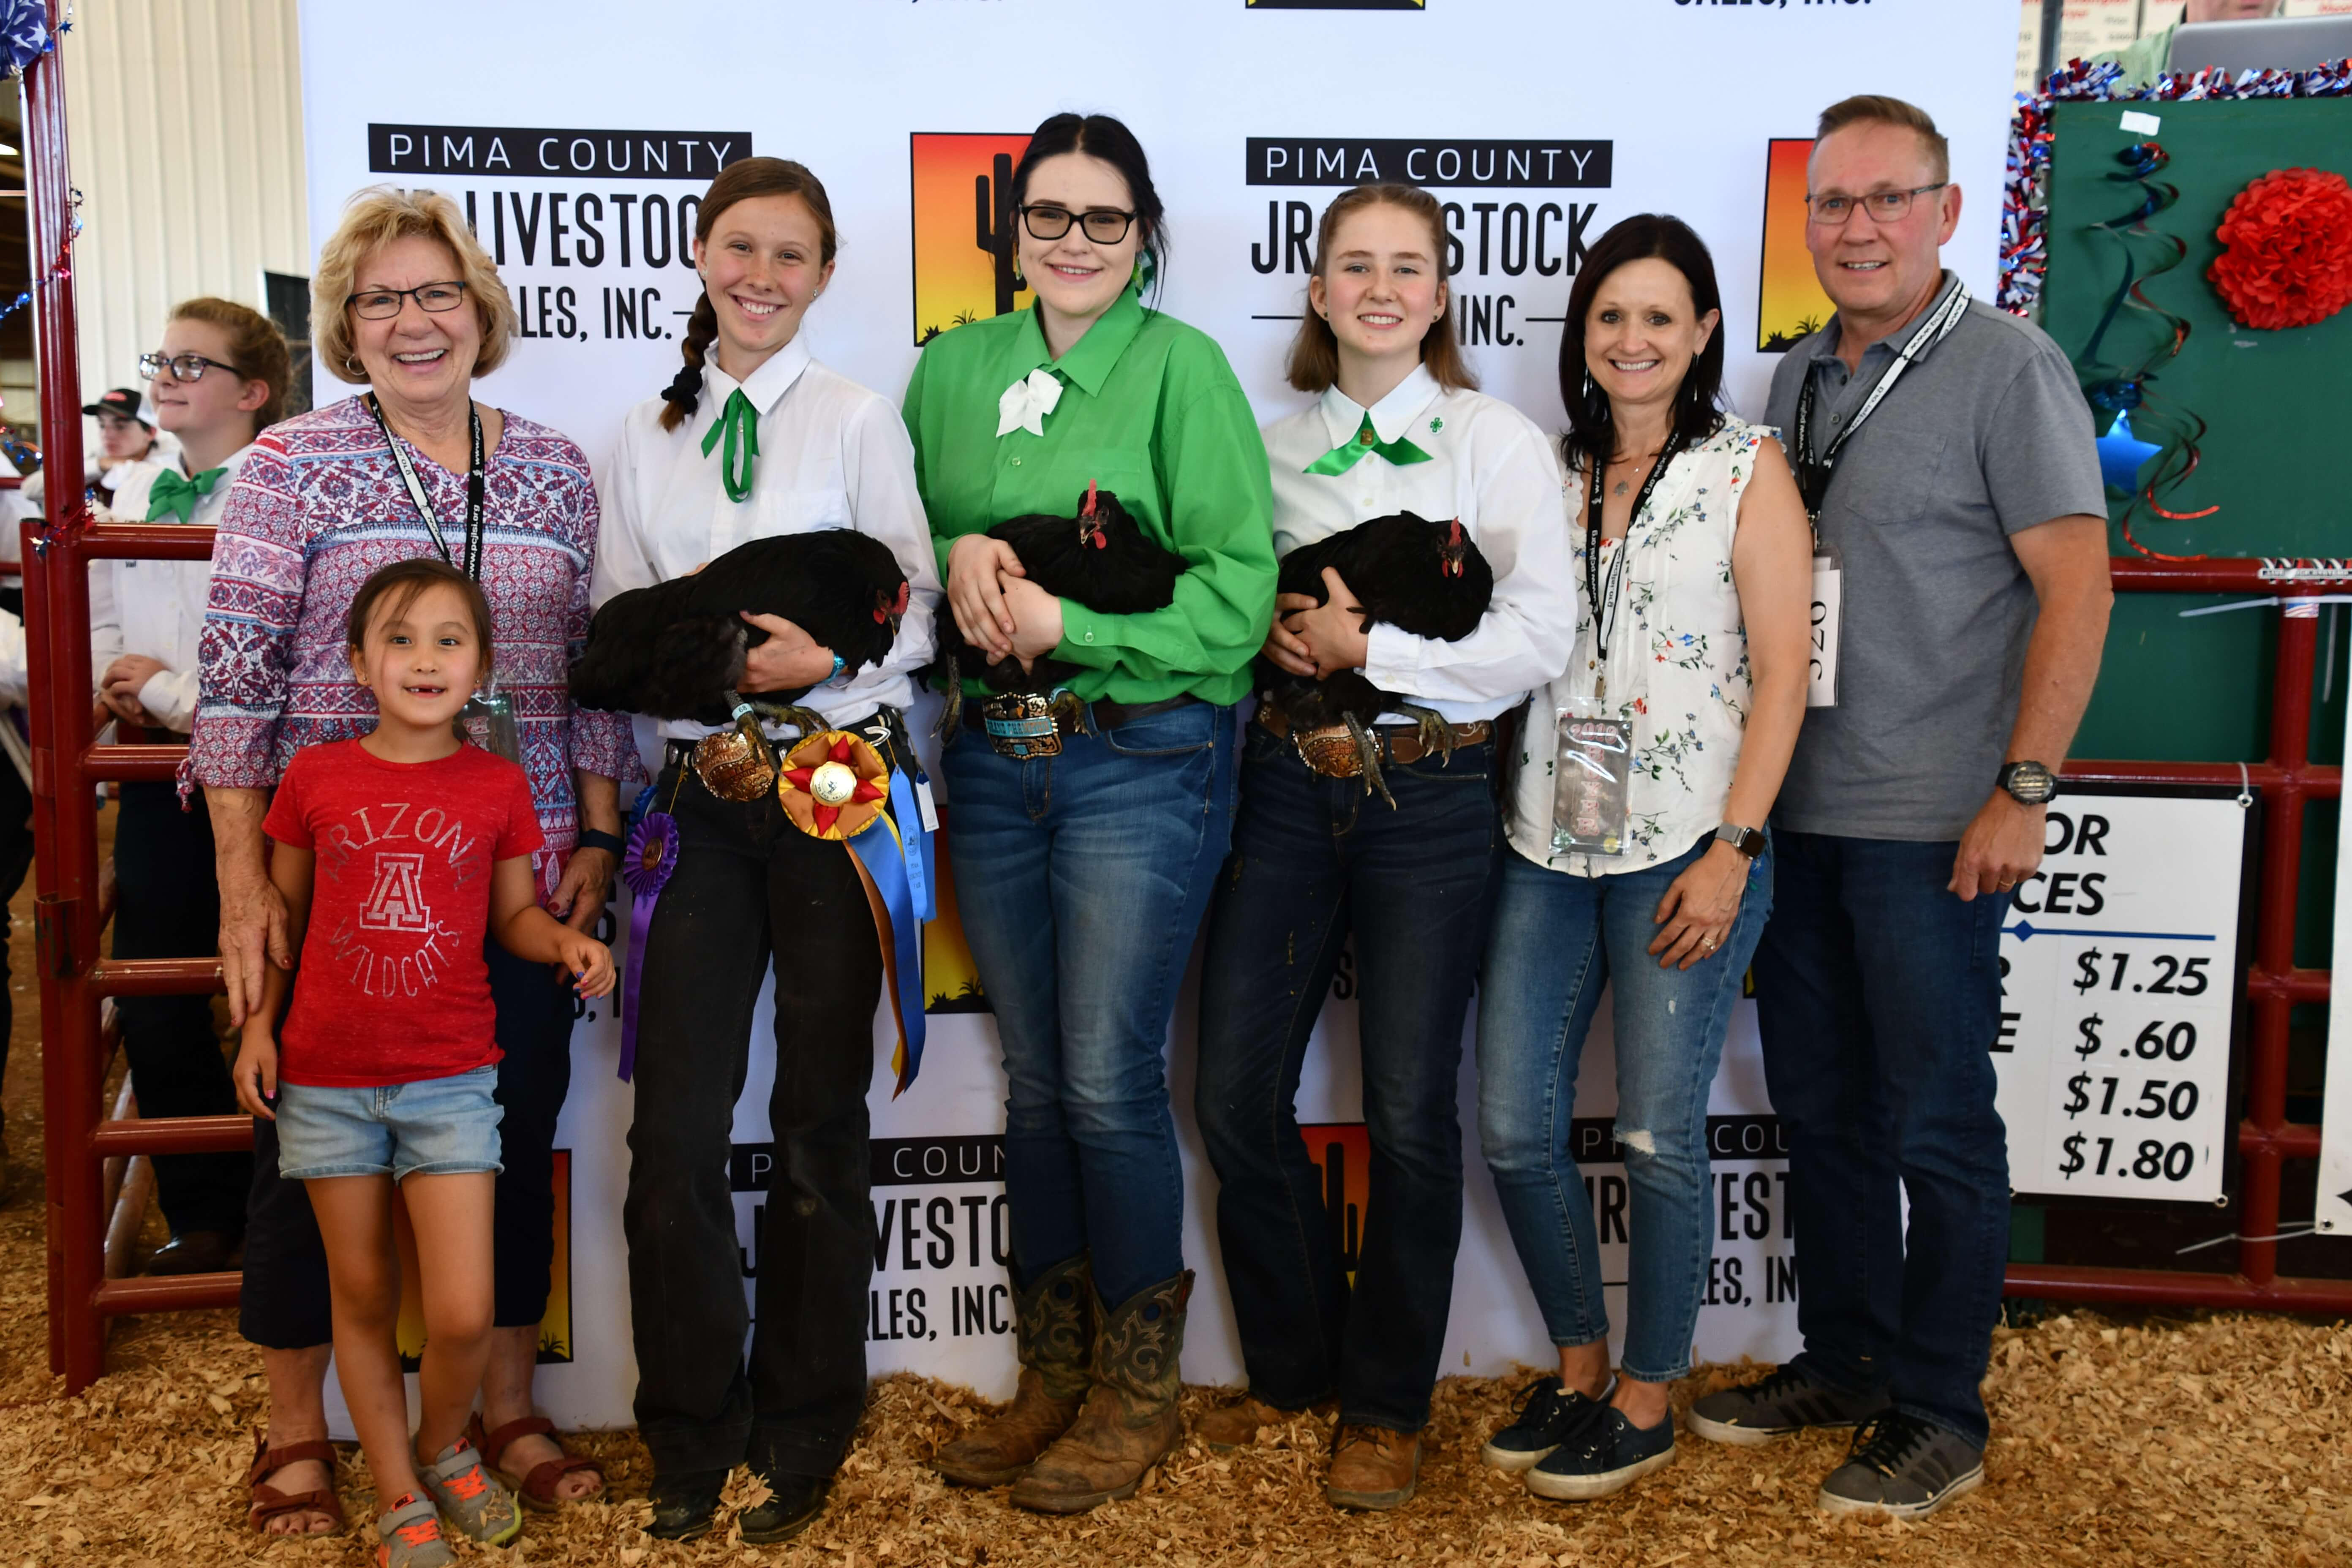 2019 Champion Photos Pima County Jr Livestock Sales Inc